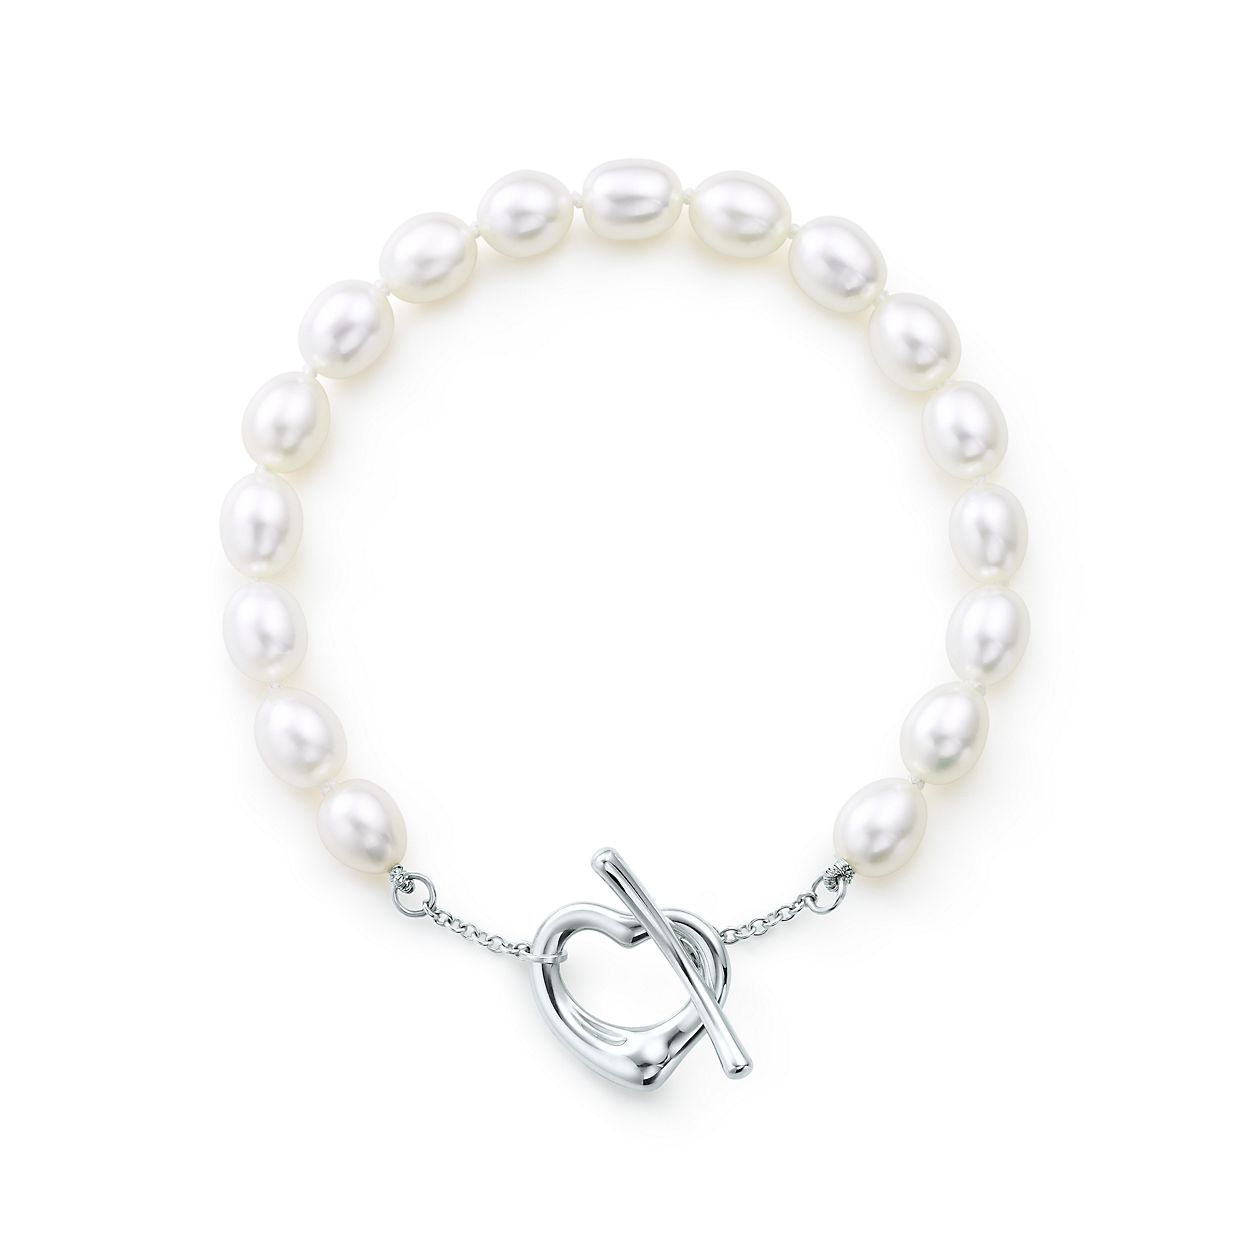 pearl open bracelets silver fmt constrain sterling in heart bracelet fit jewelry hei elsa peretti wid id medium k ed